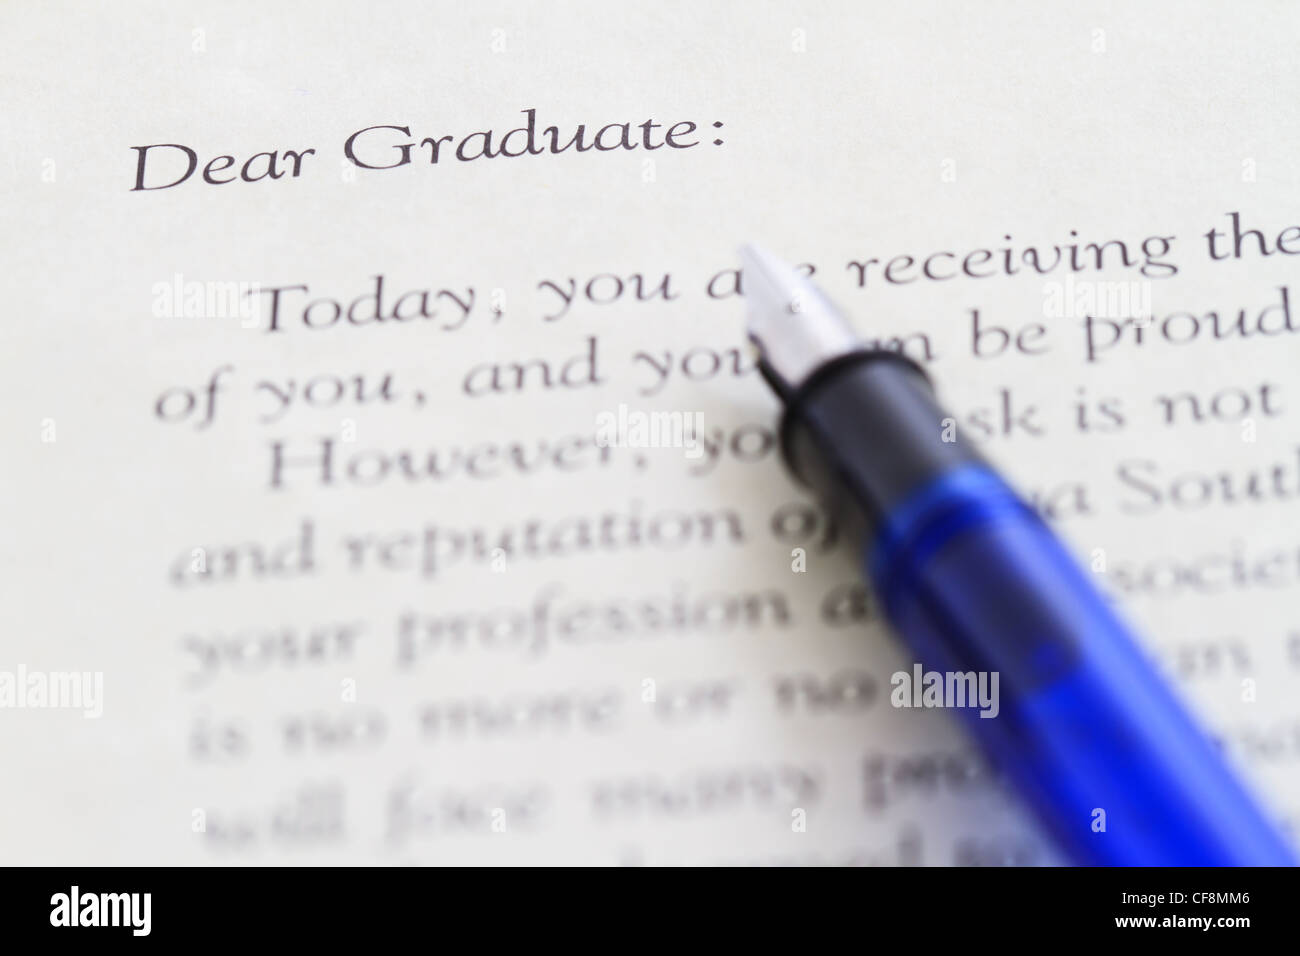 old fashioned fountain pen resting on diploma and graduation papers - Stock Image